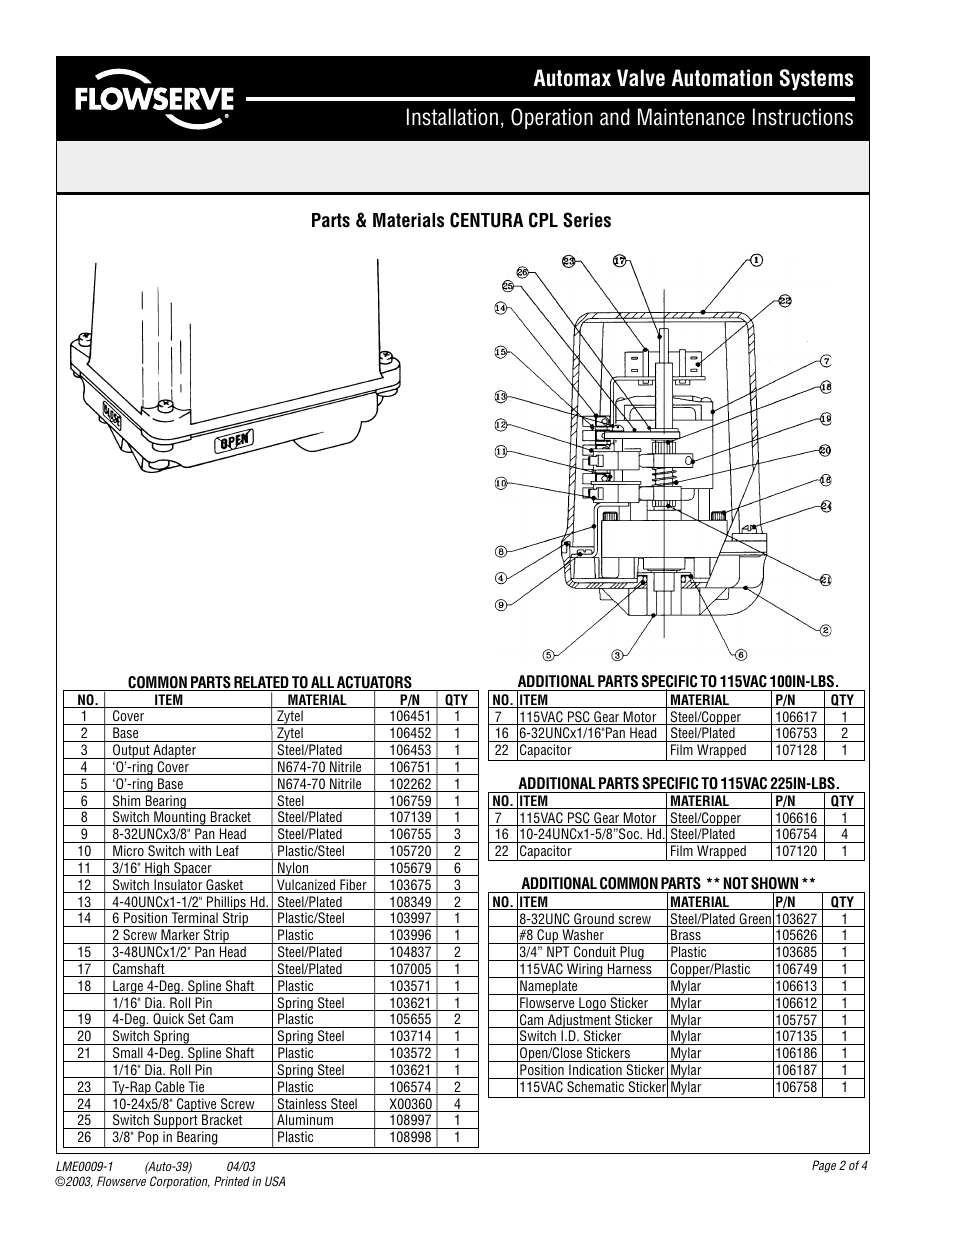 Parts Materials Centura Cpl Series Flowserve Wiring Diagram User Manual Page 2